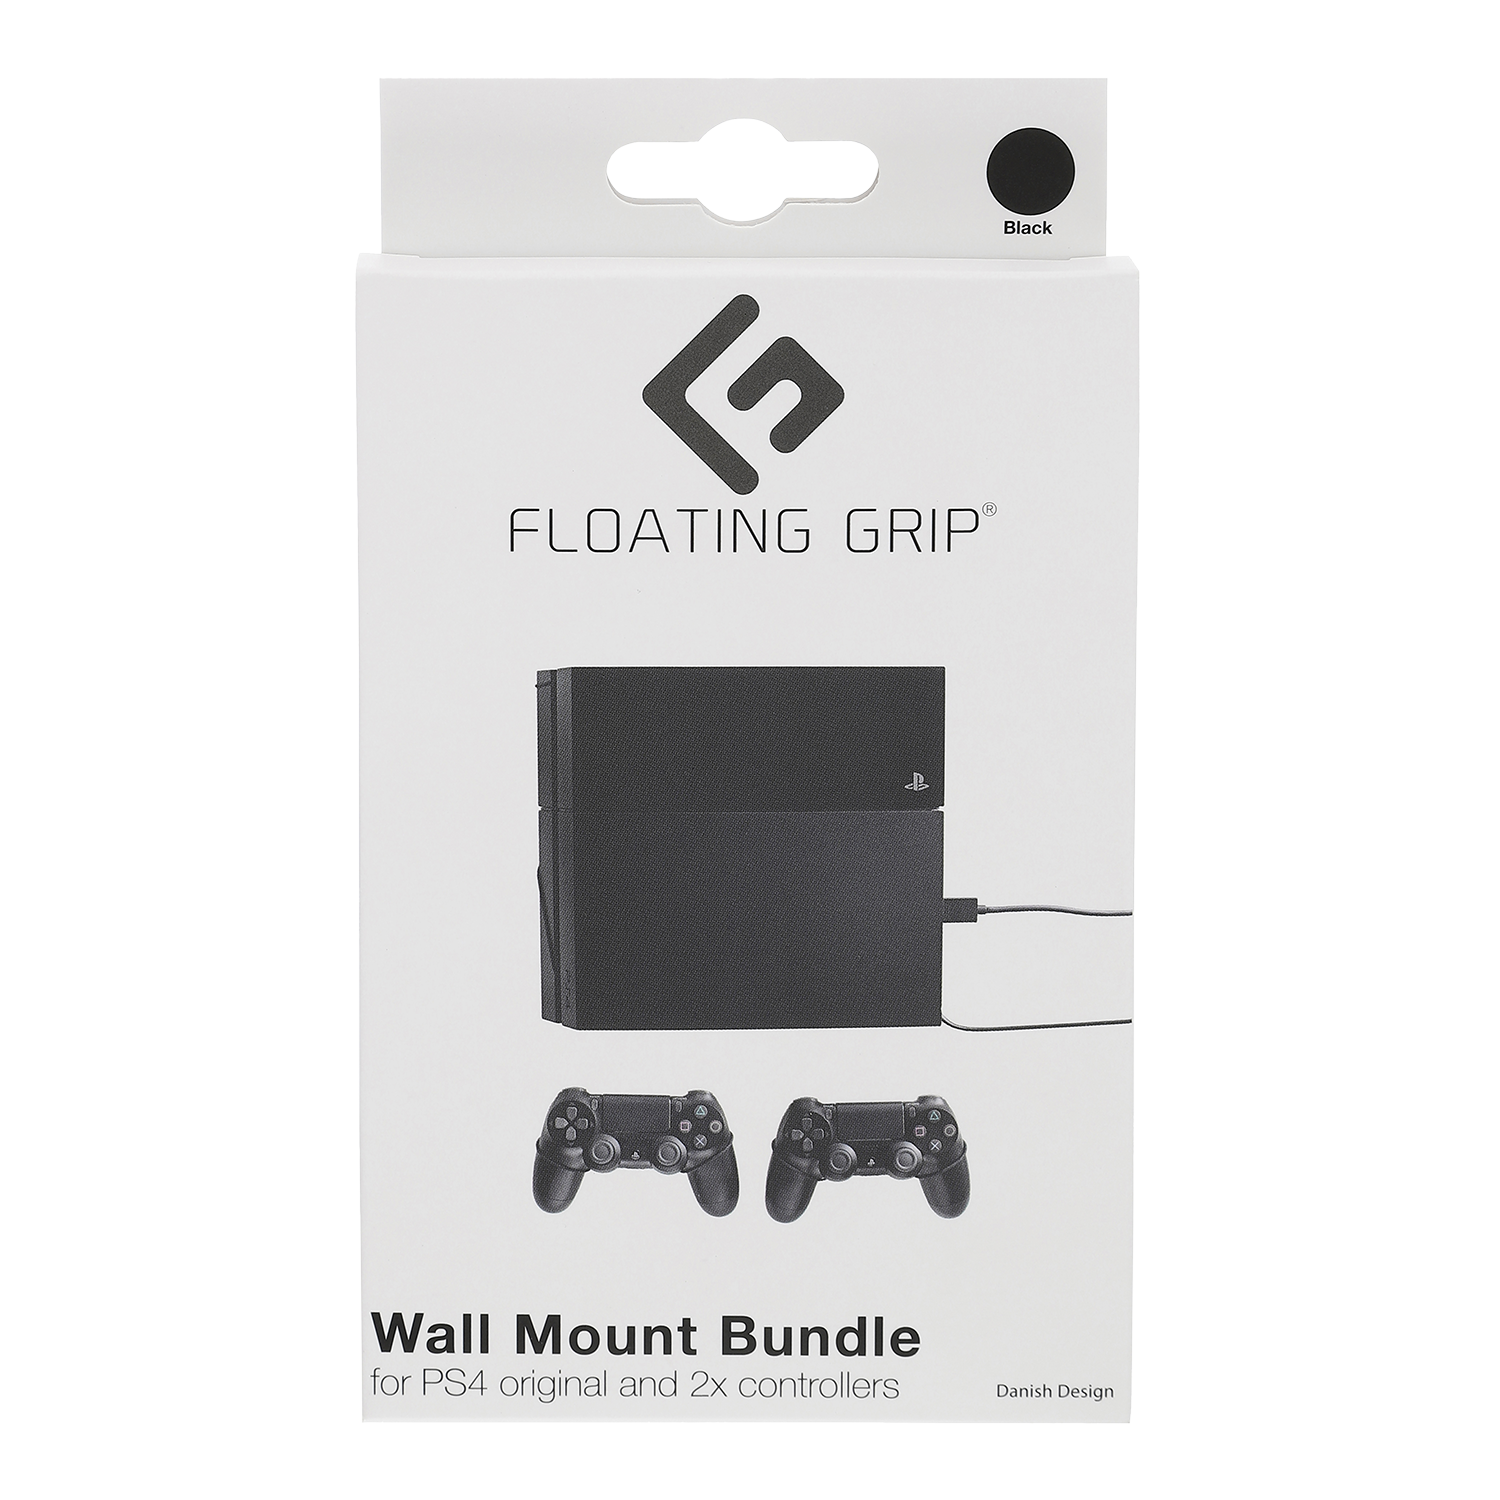 Floating Grip Playstation 4 and Controller Wall Mount - Bundle (Black)